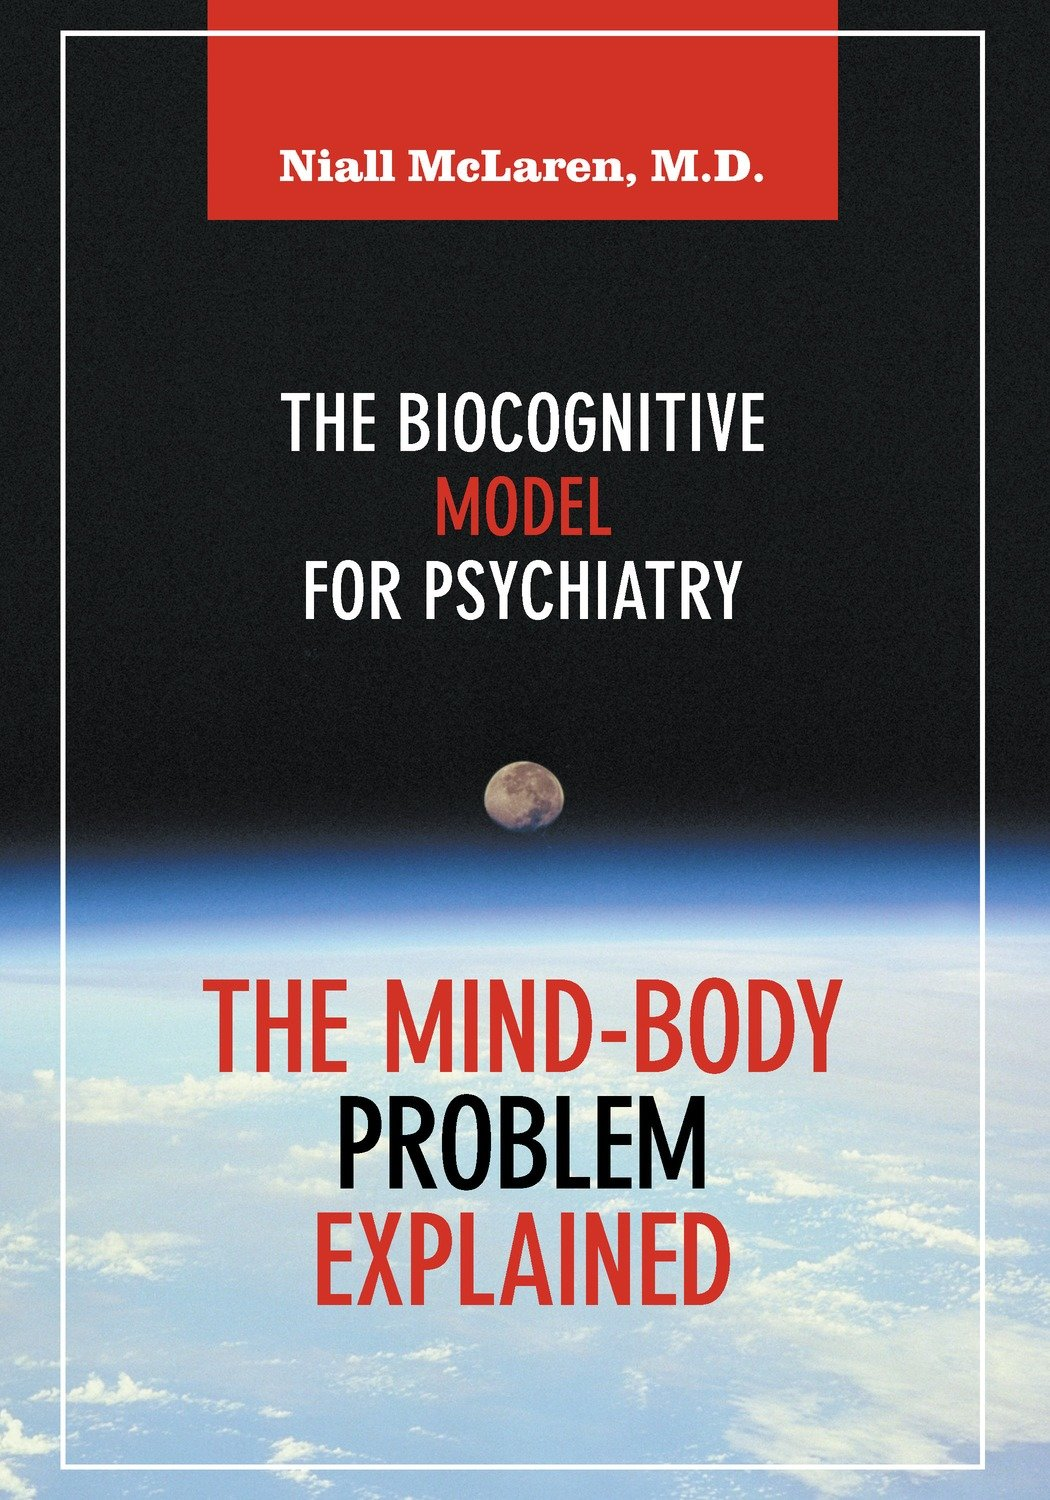 The Mind-Body Problem Explained